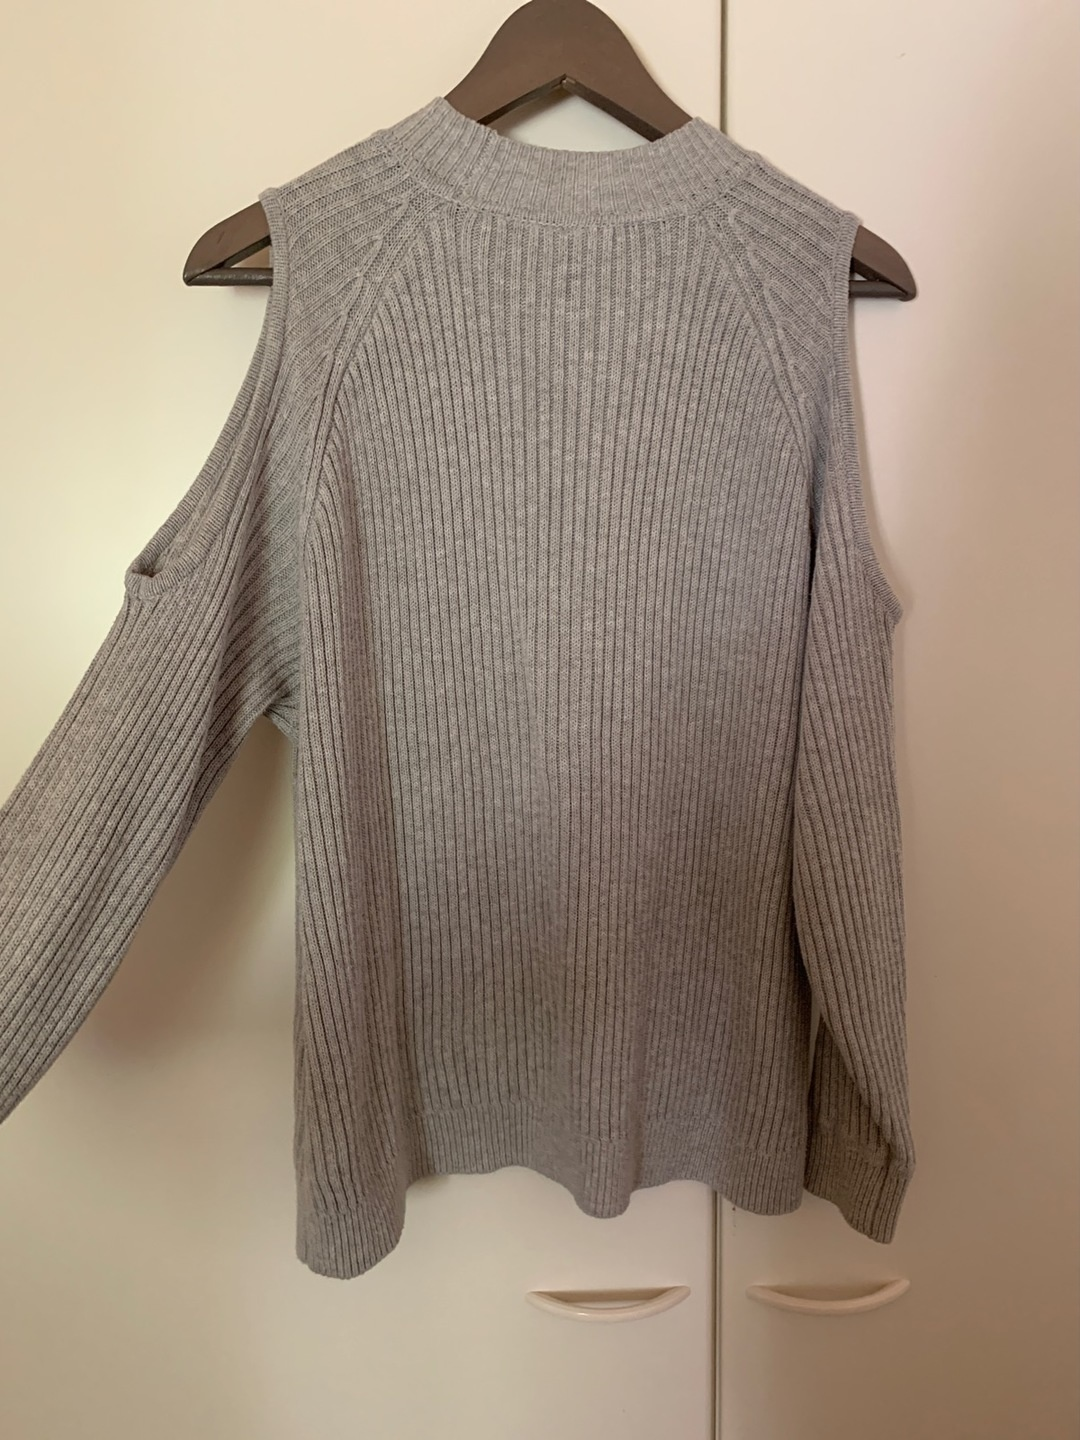 Women's jumpers & cardigans - DIVIDED BY H&M photo 2